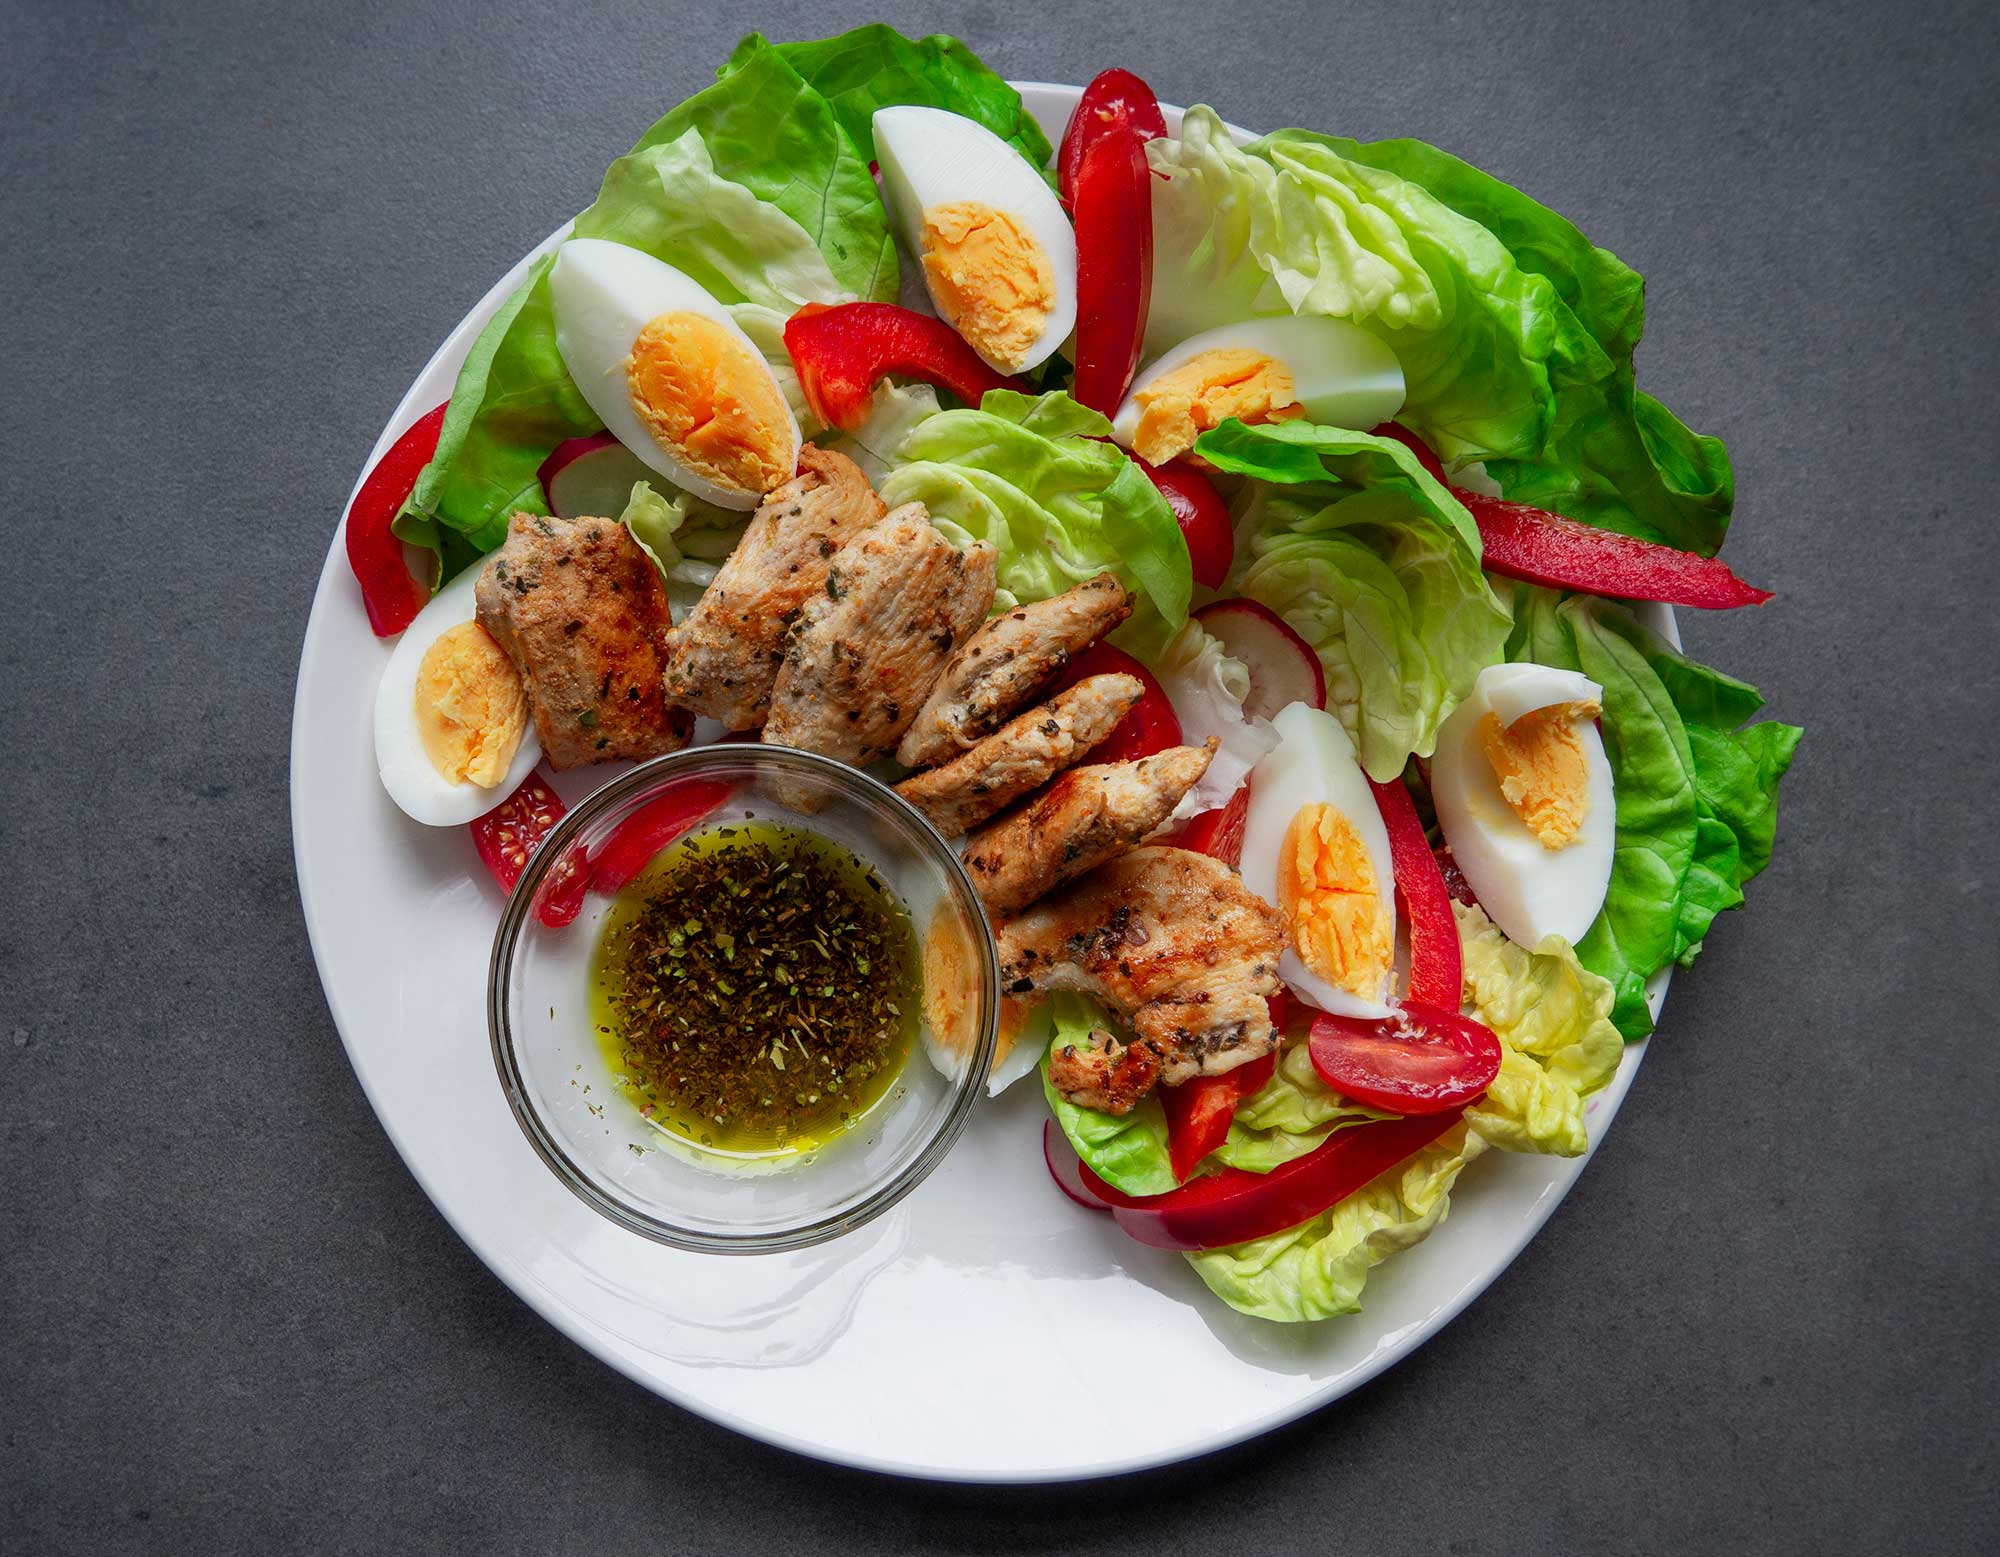 Salad with Grilled Chicken and Eggs